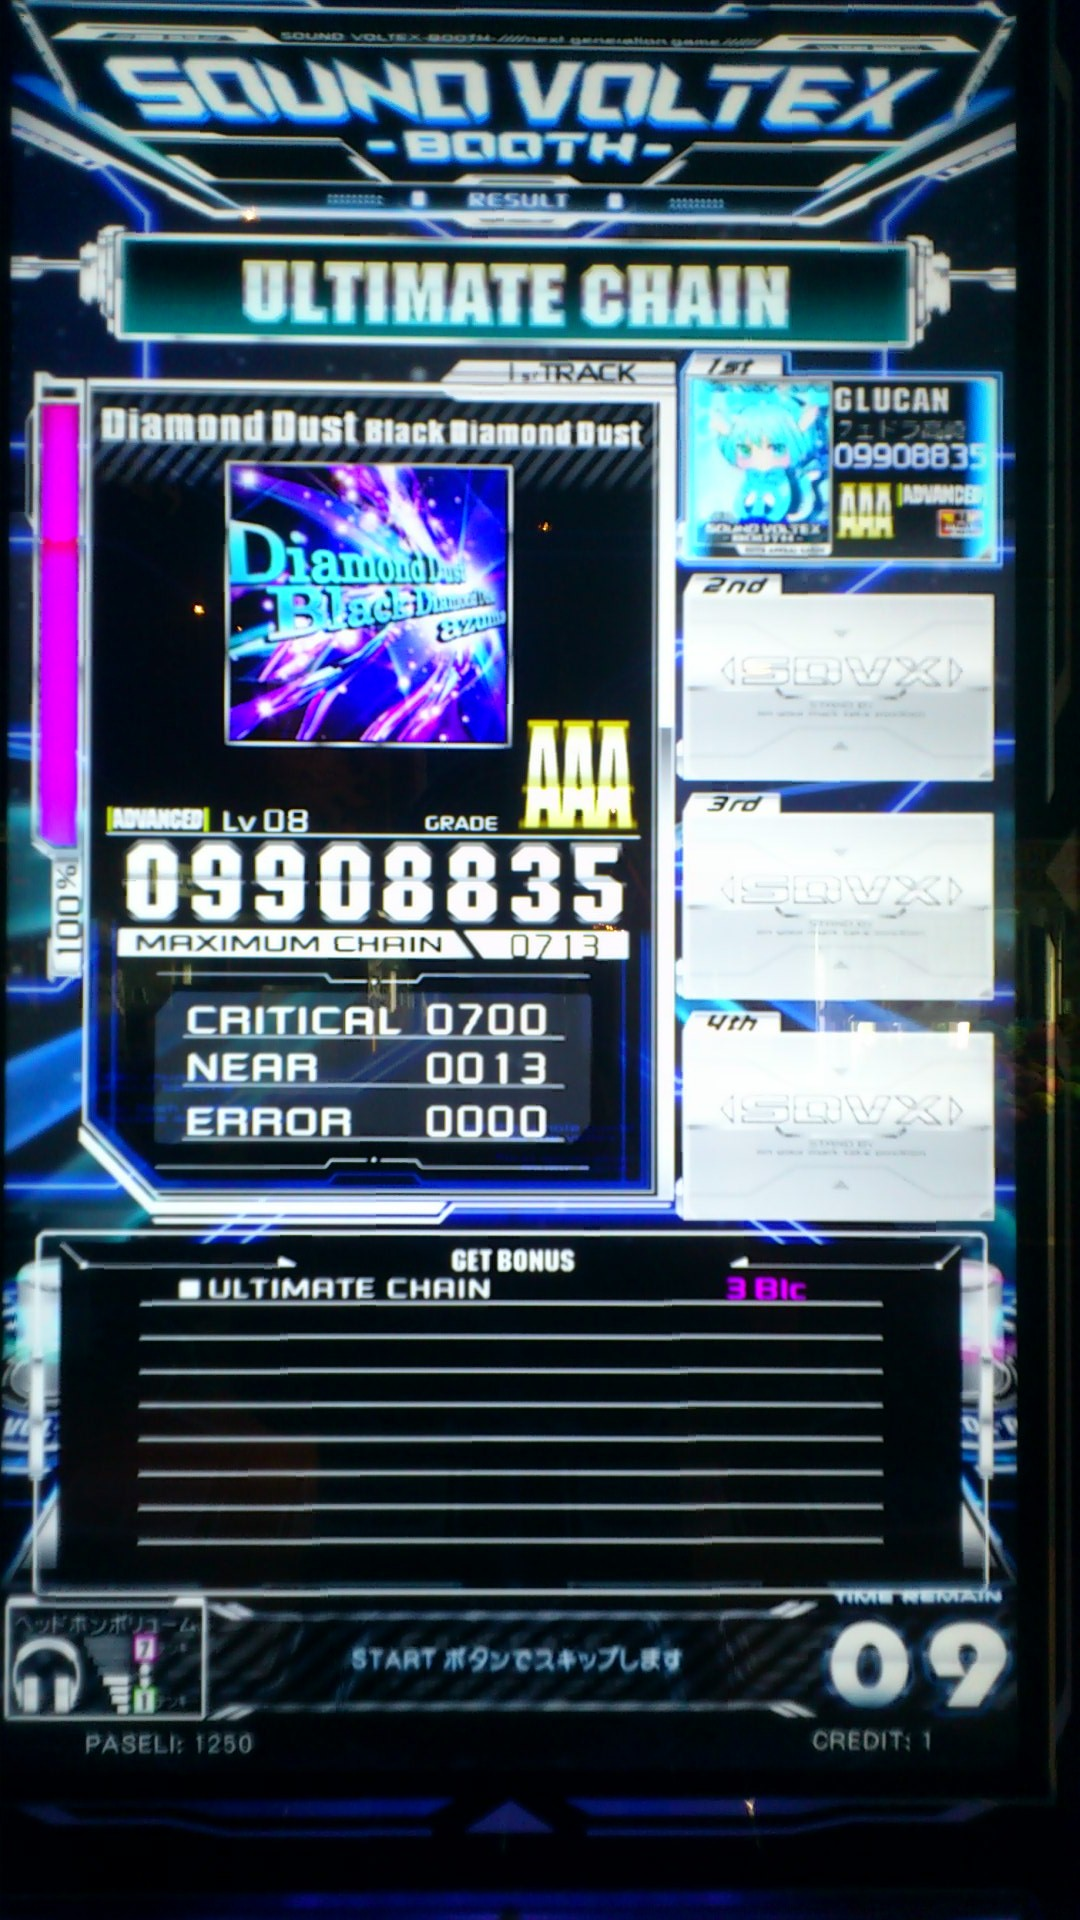 Diamond Dust ADV UC